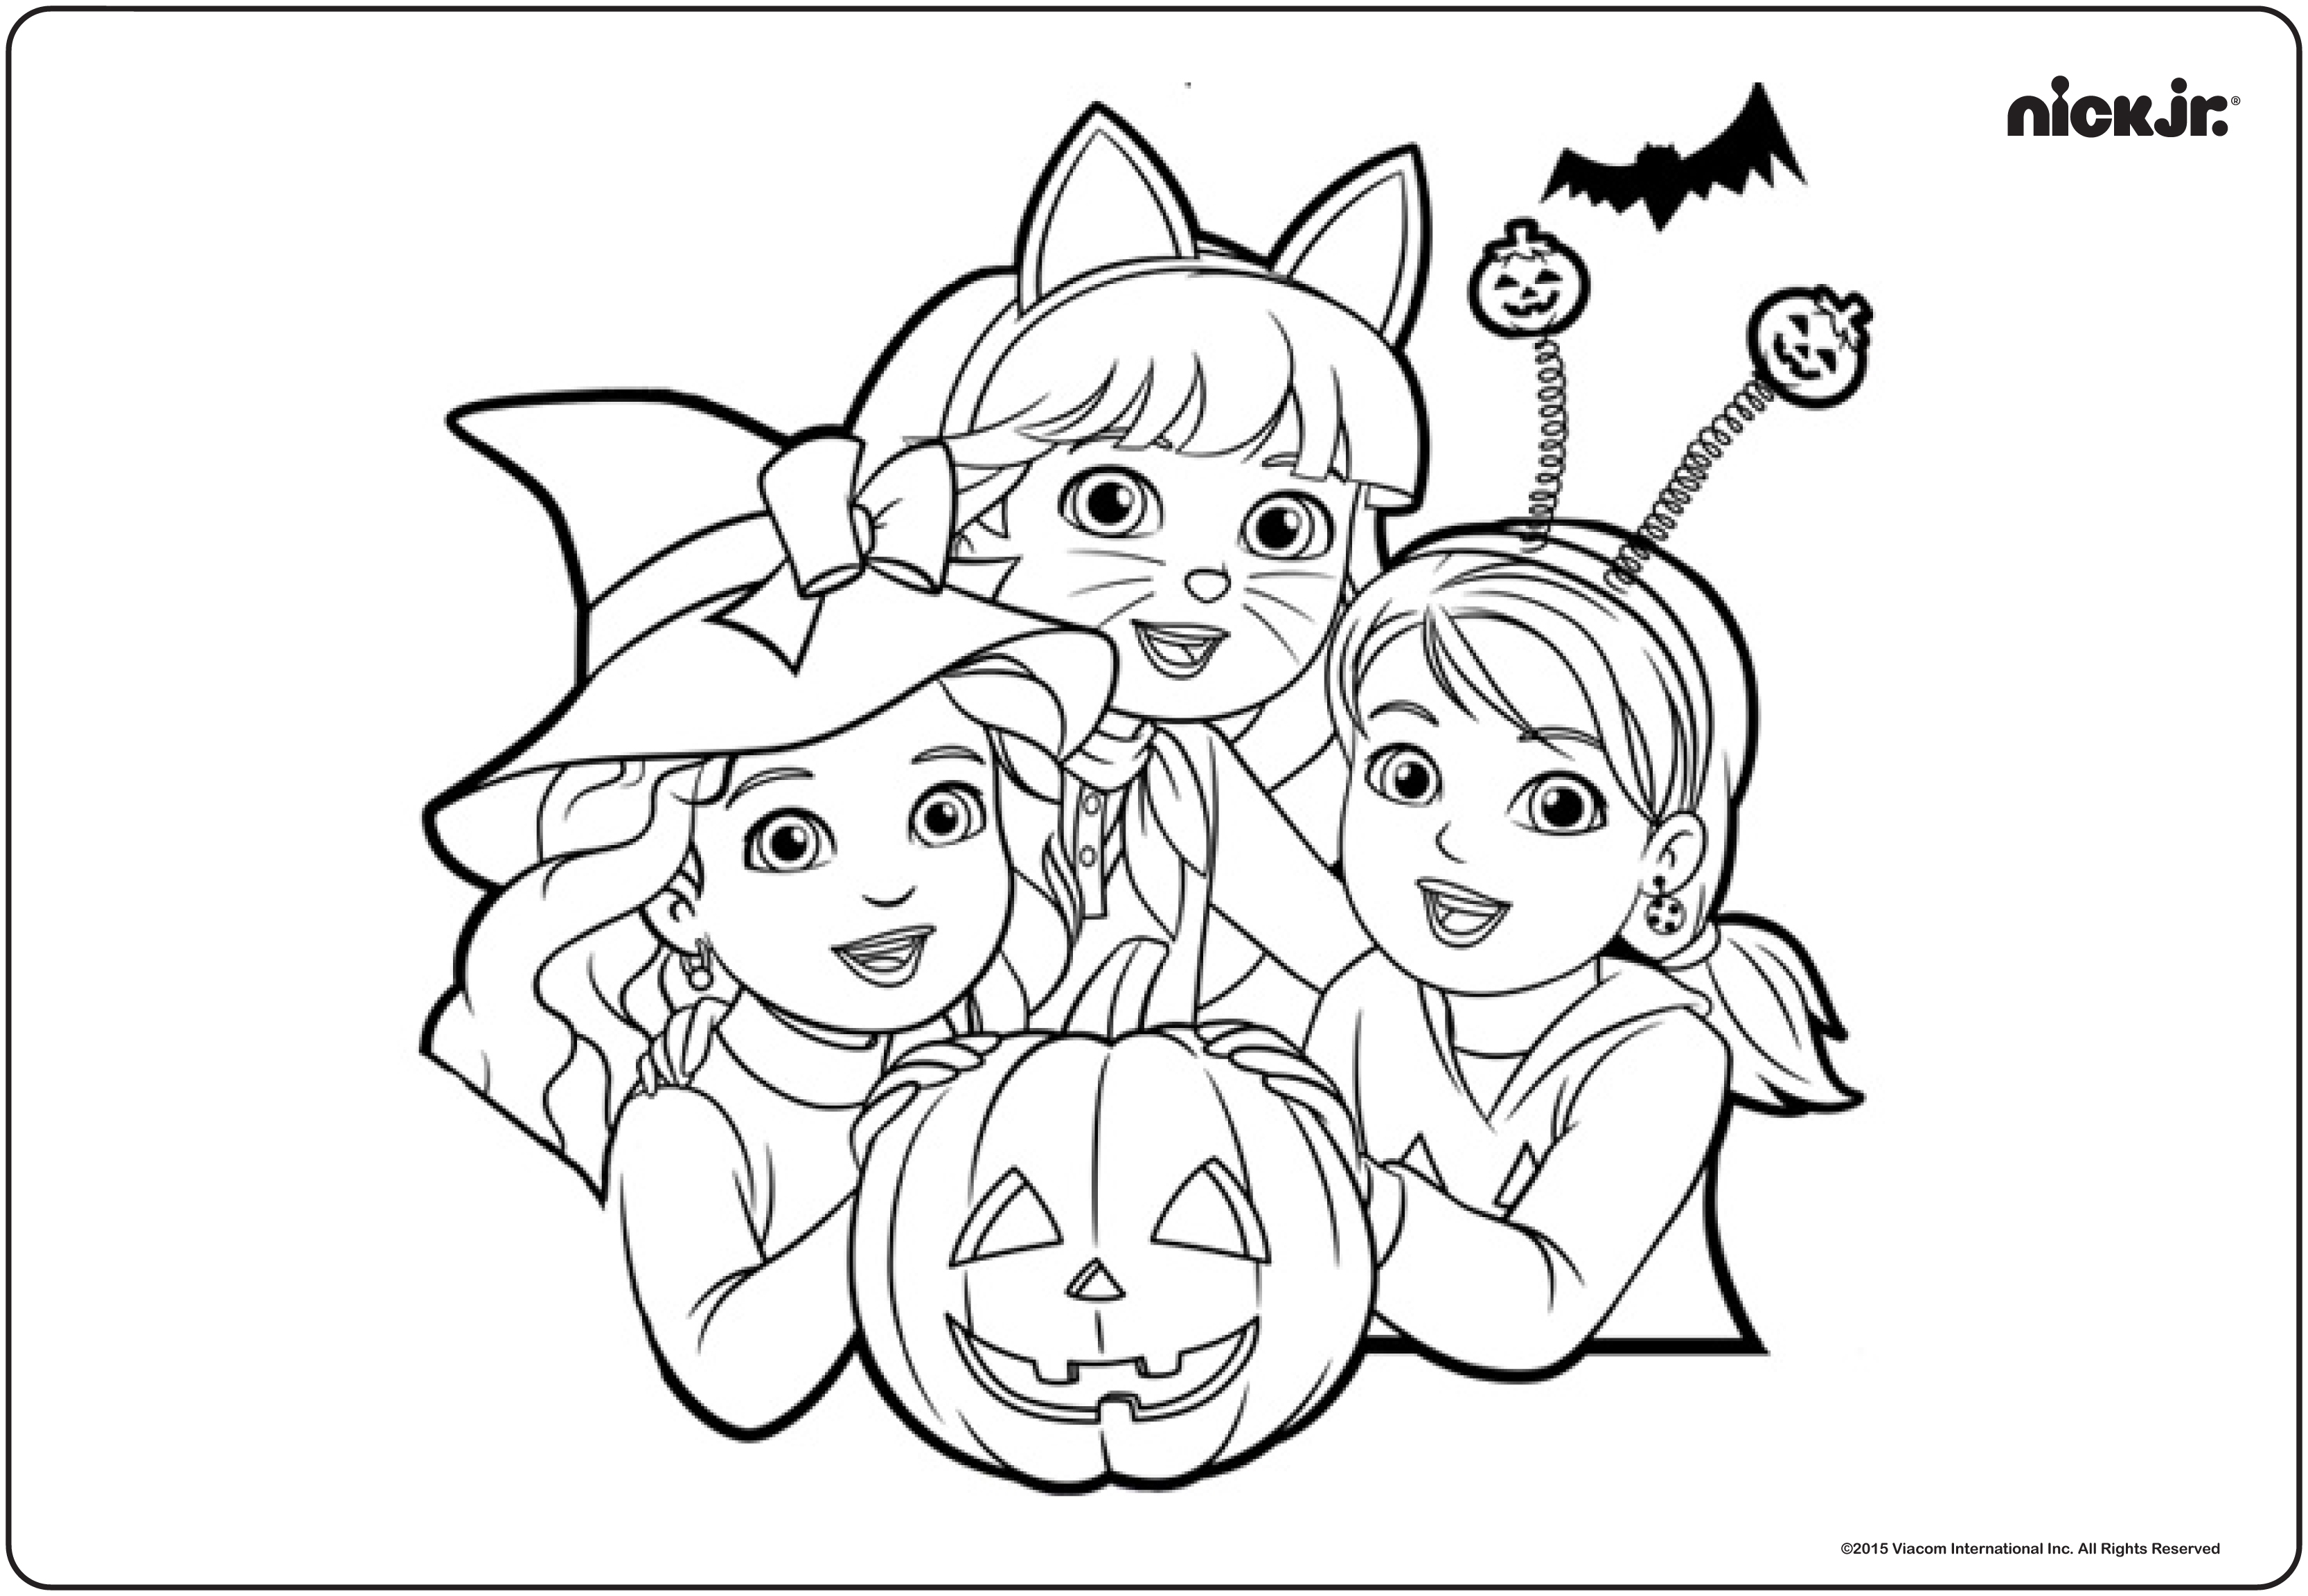 nick jr coloring pages halloween - photo#3